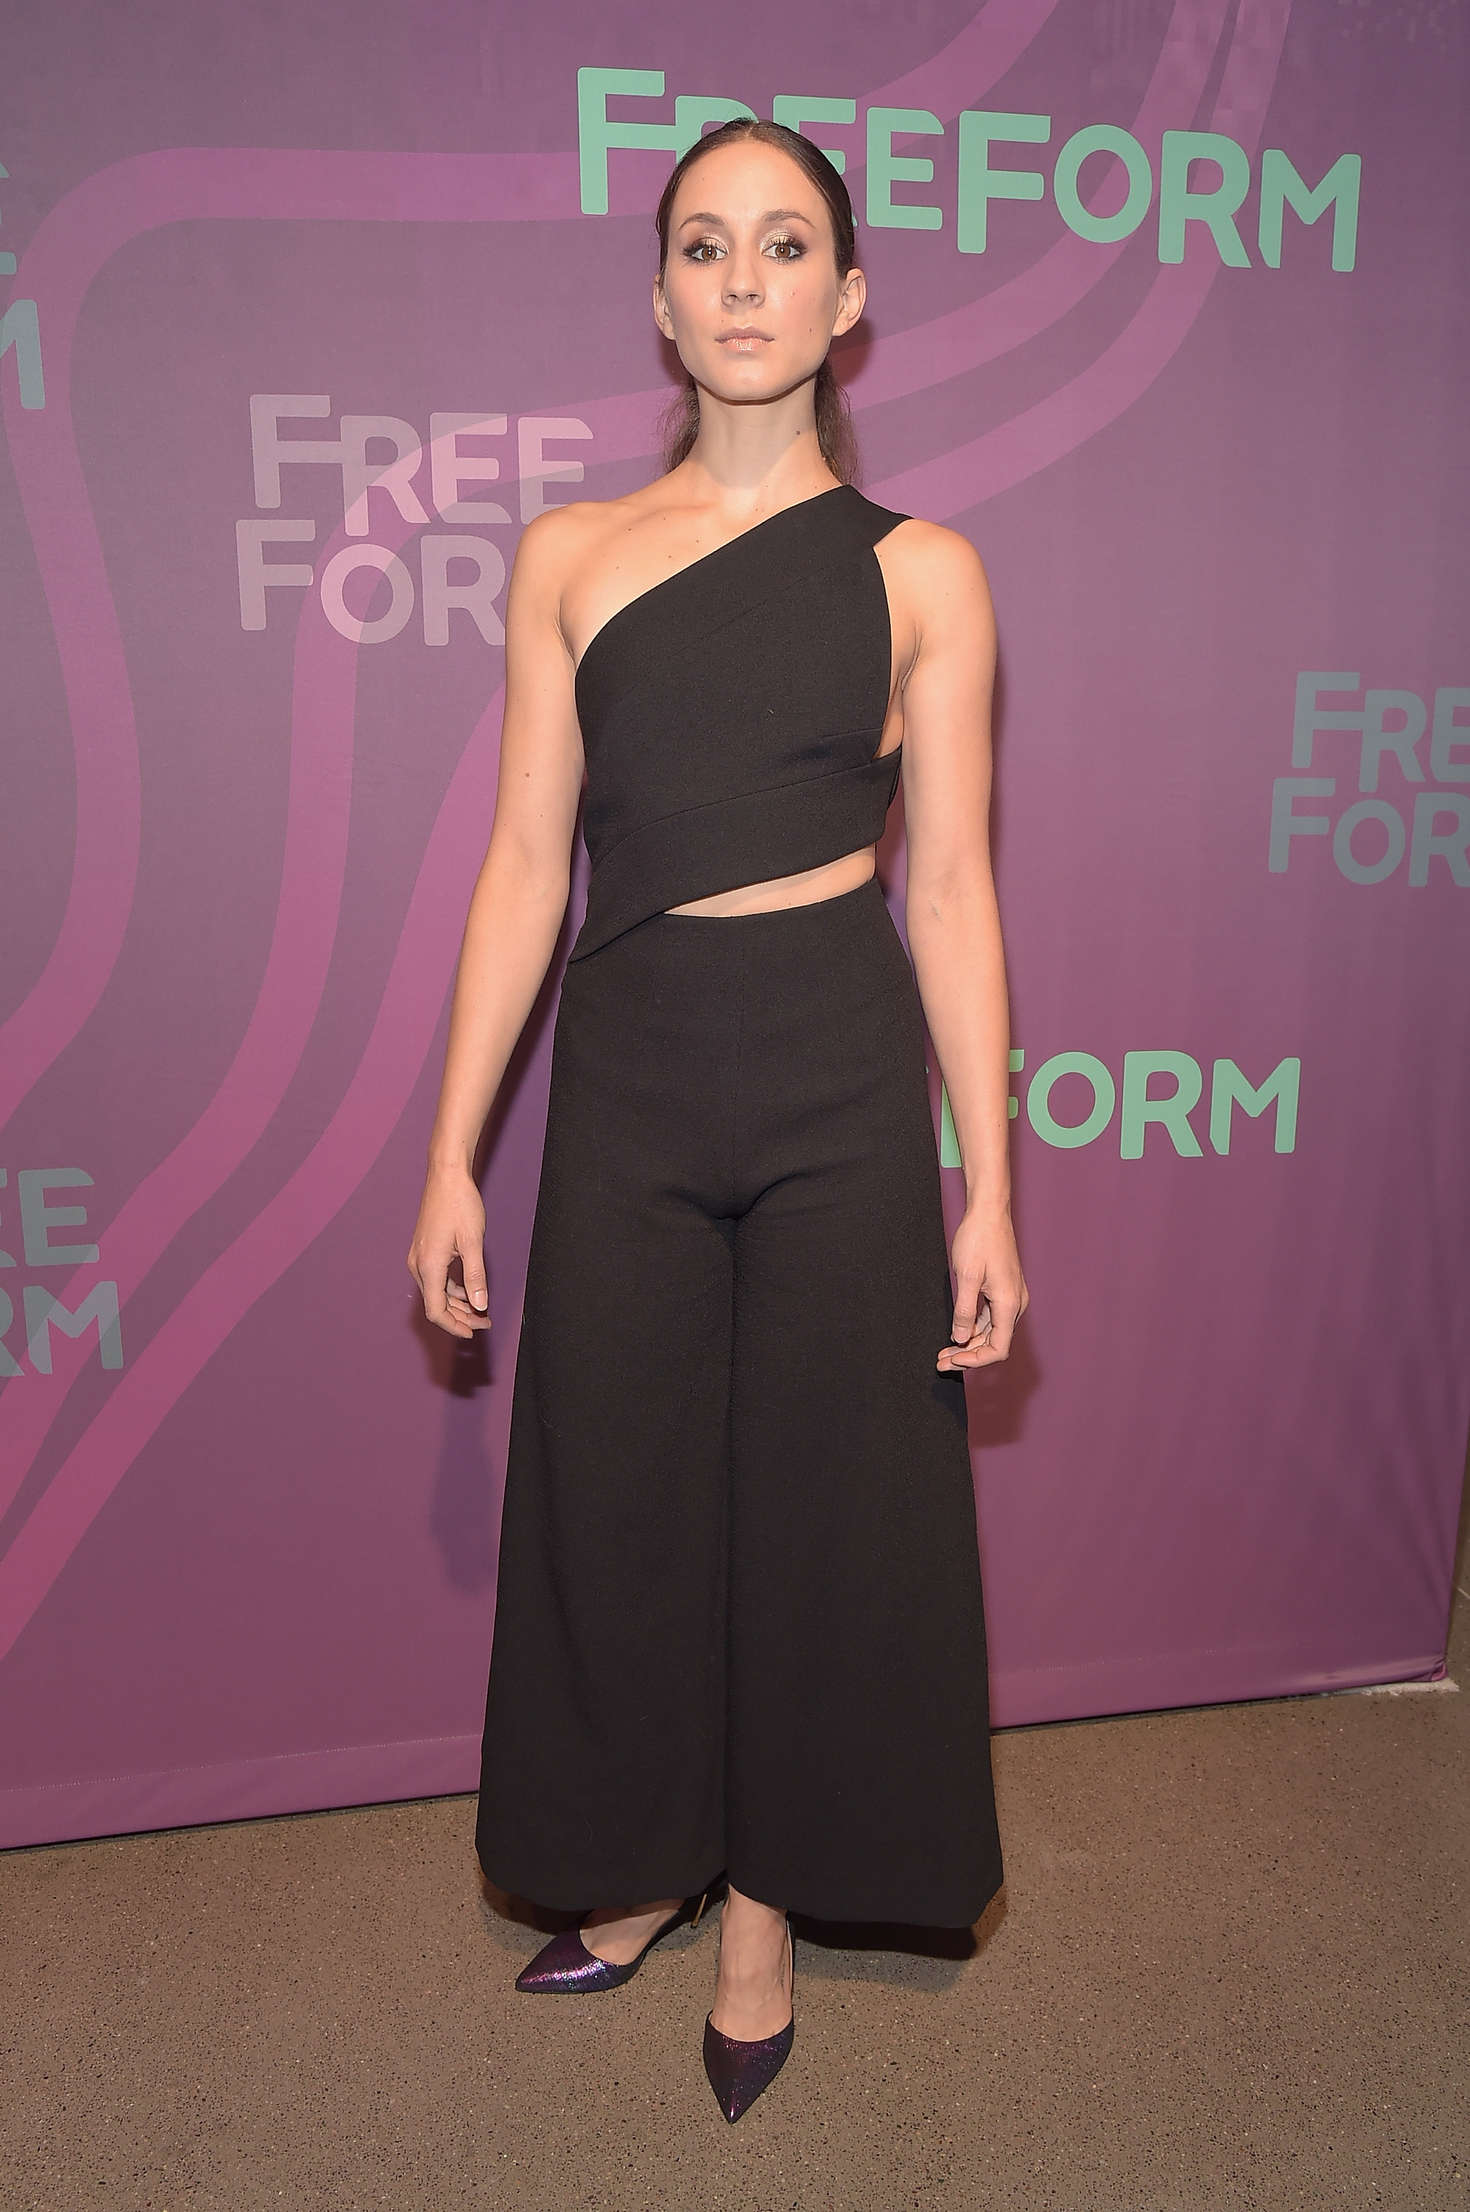 Troian Bellisario ABC Freeform Upfront in New York